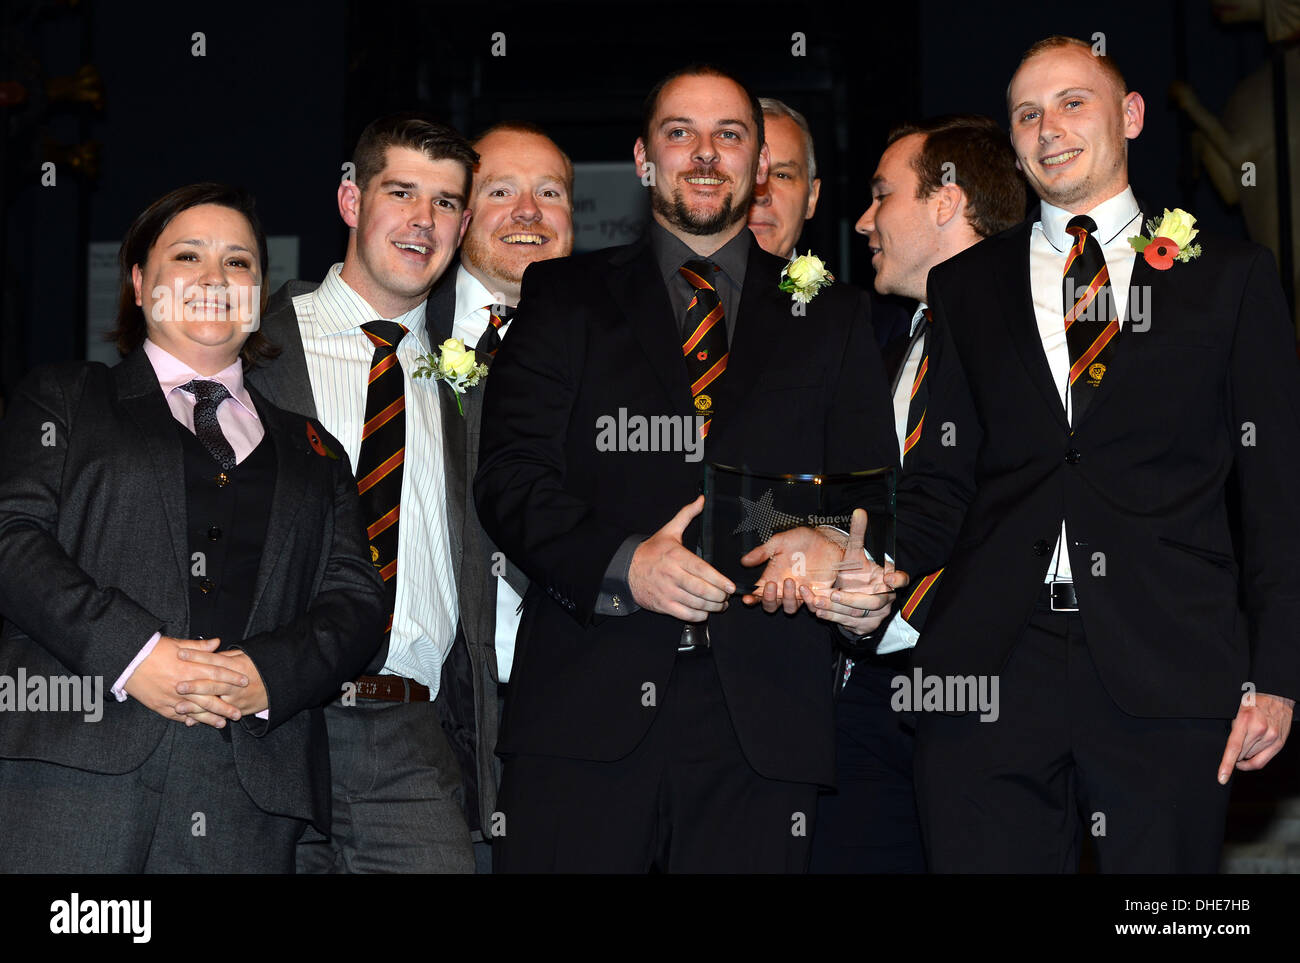 London, UK. 7th Nov 2013.  Cardiff Lions, Sports Award of the year Stonewall Awards 2013 taking place at the Victoria and Albert Museum. Credit:  See Li/Alamy Live News - Stock Image